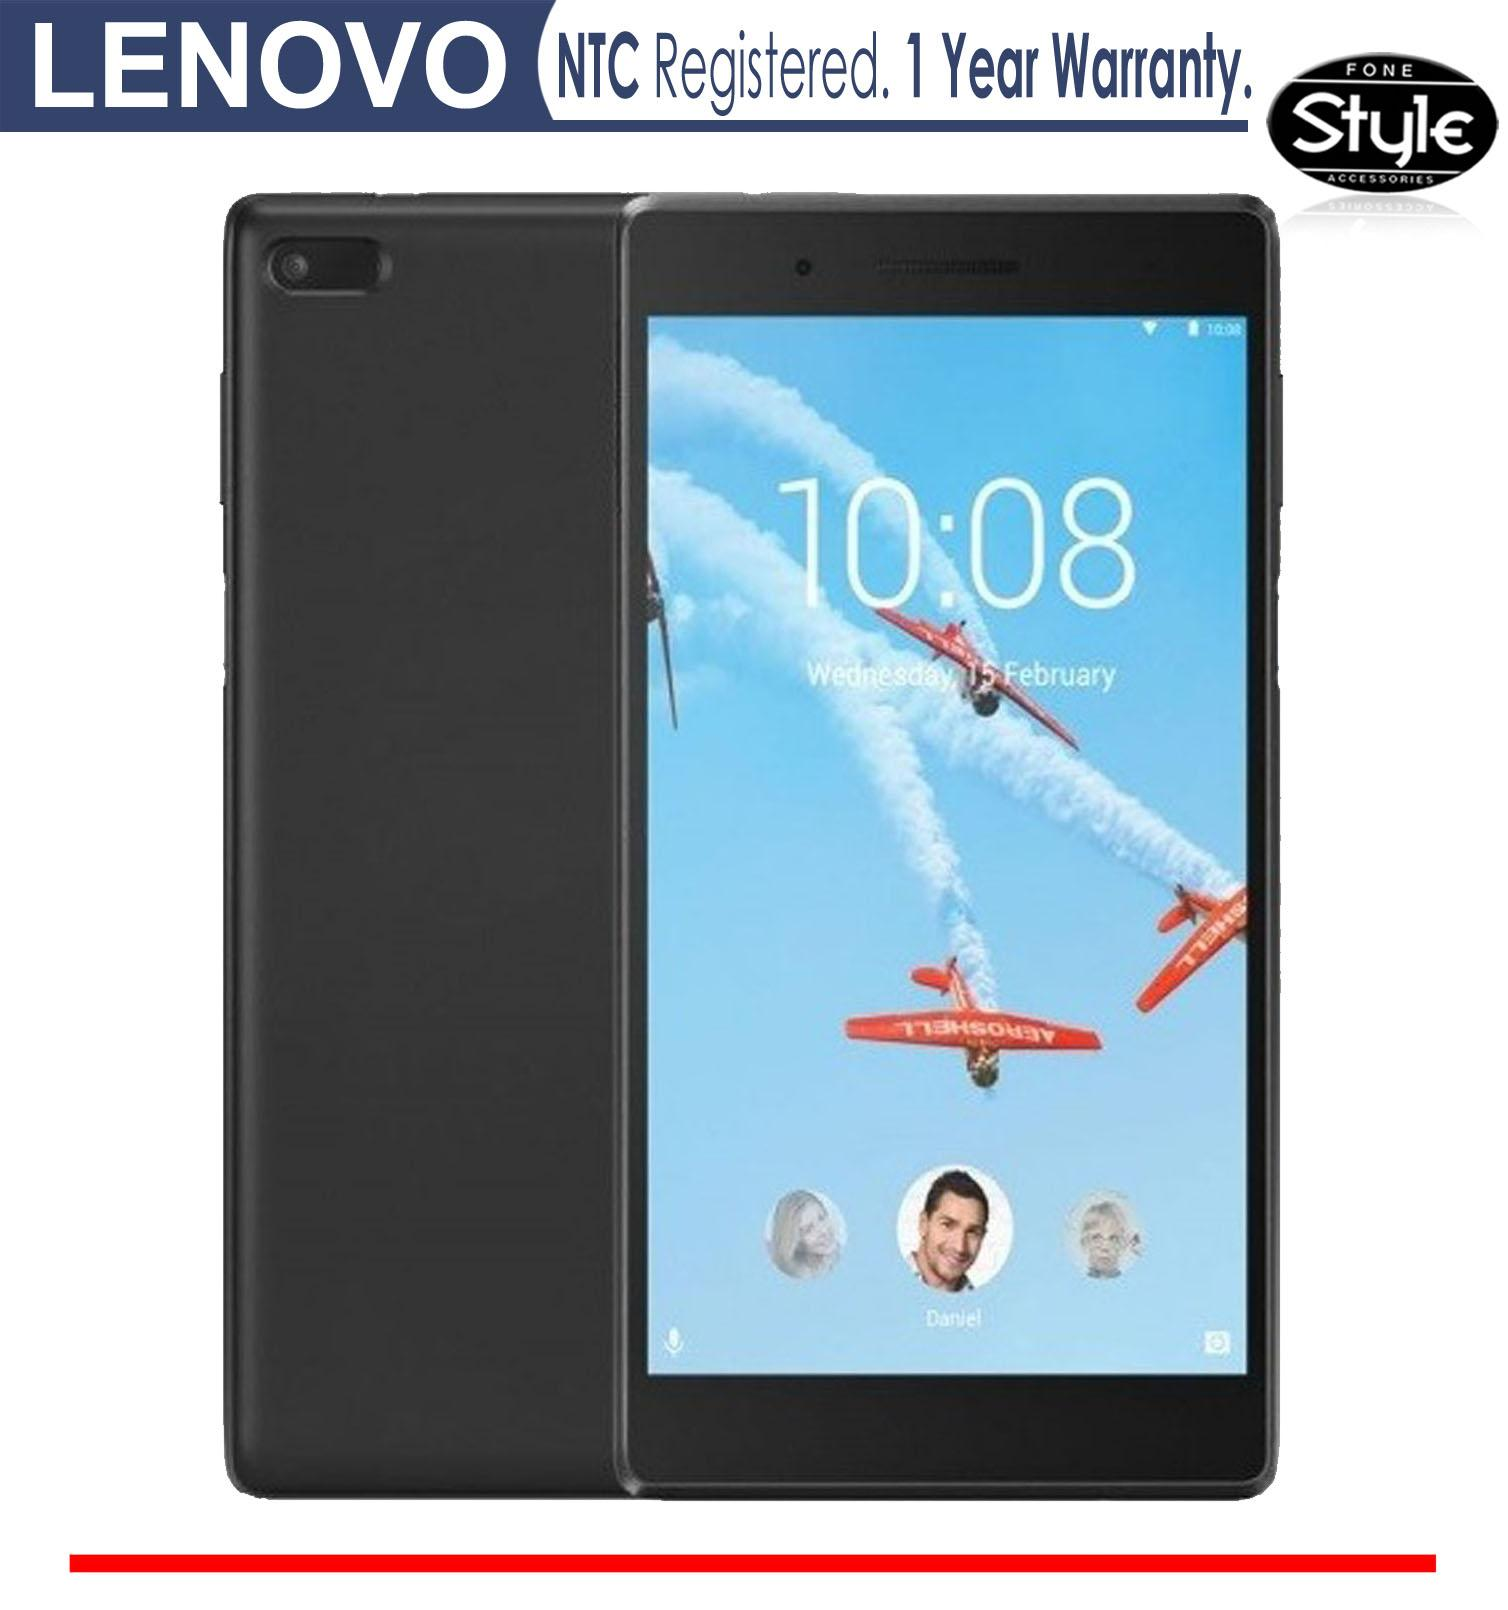 Lenovo Tablet Philippines Mobile For S